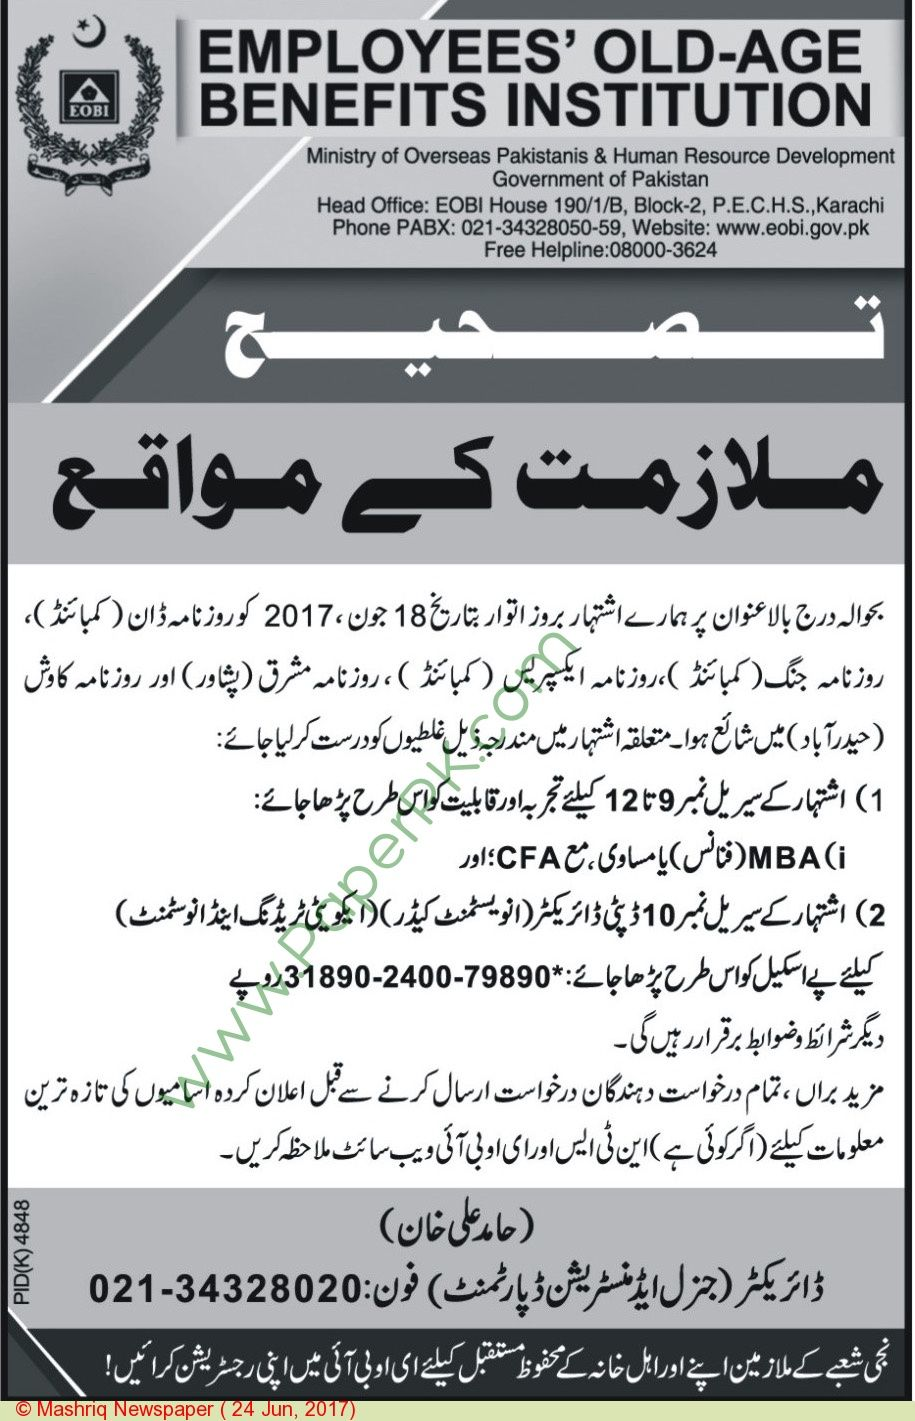 Employees Old Age Benefits Institution Karachi Jobs   Jobs In